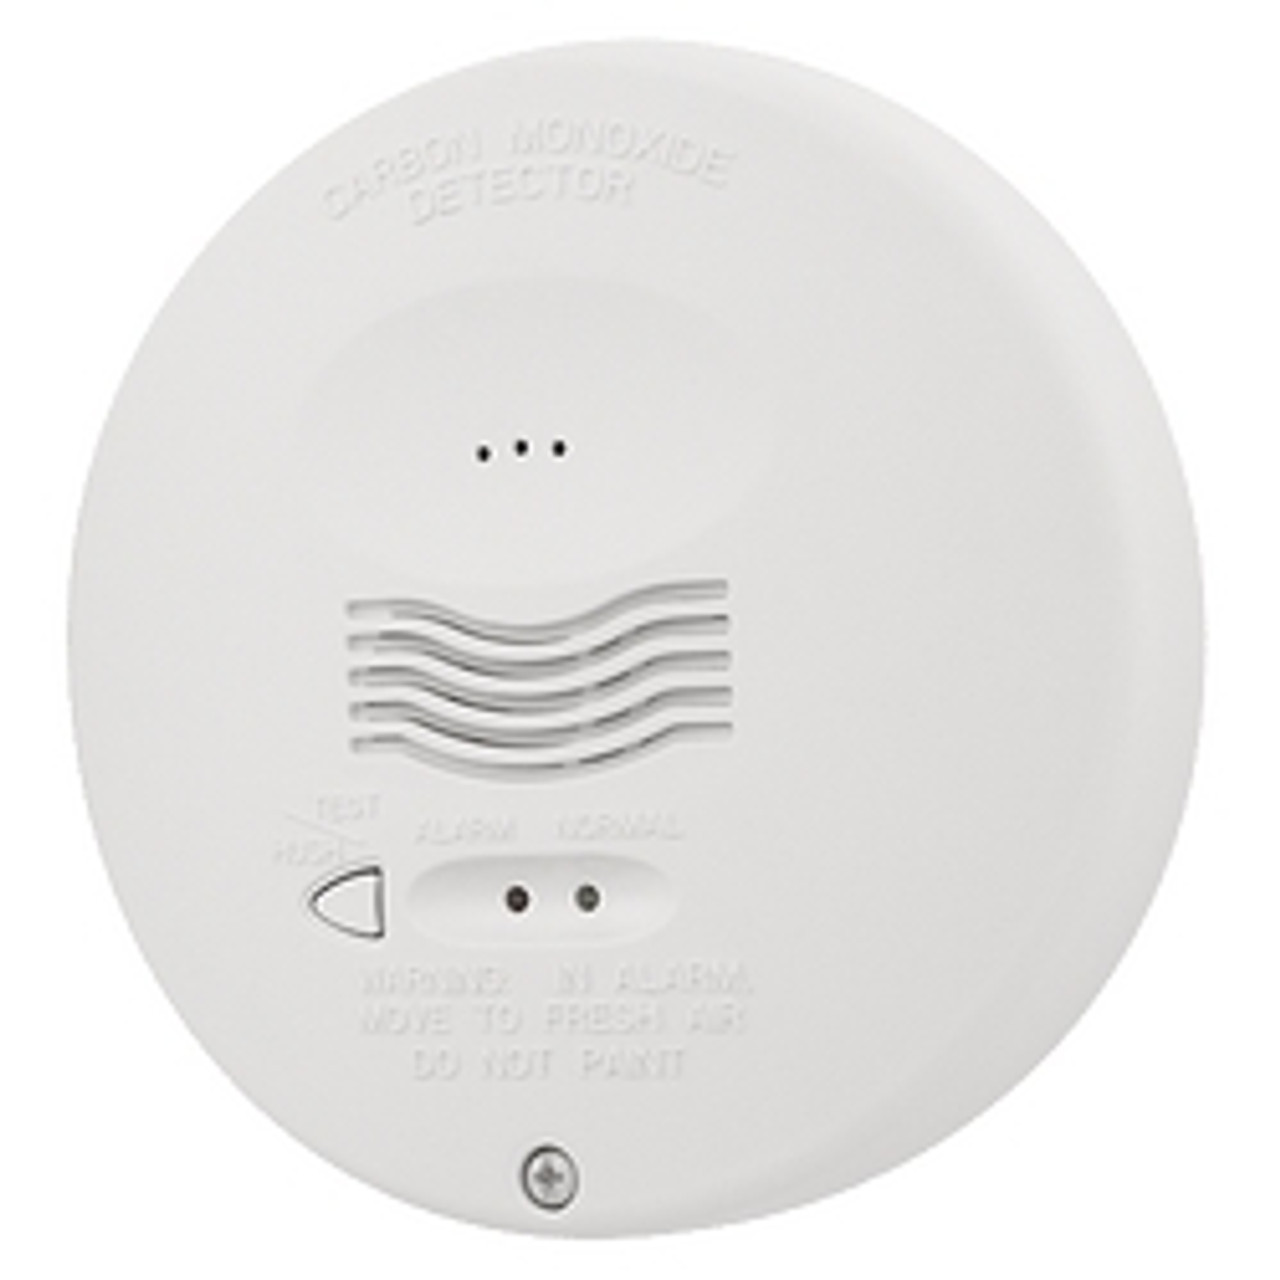 System Sensor Round Carbon Monoxide Gas Detector 4-Wire 12/24V with Real Test